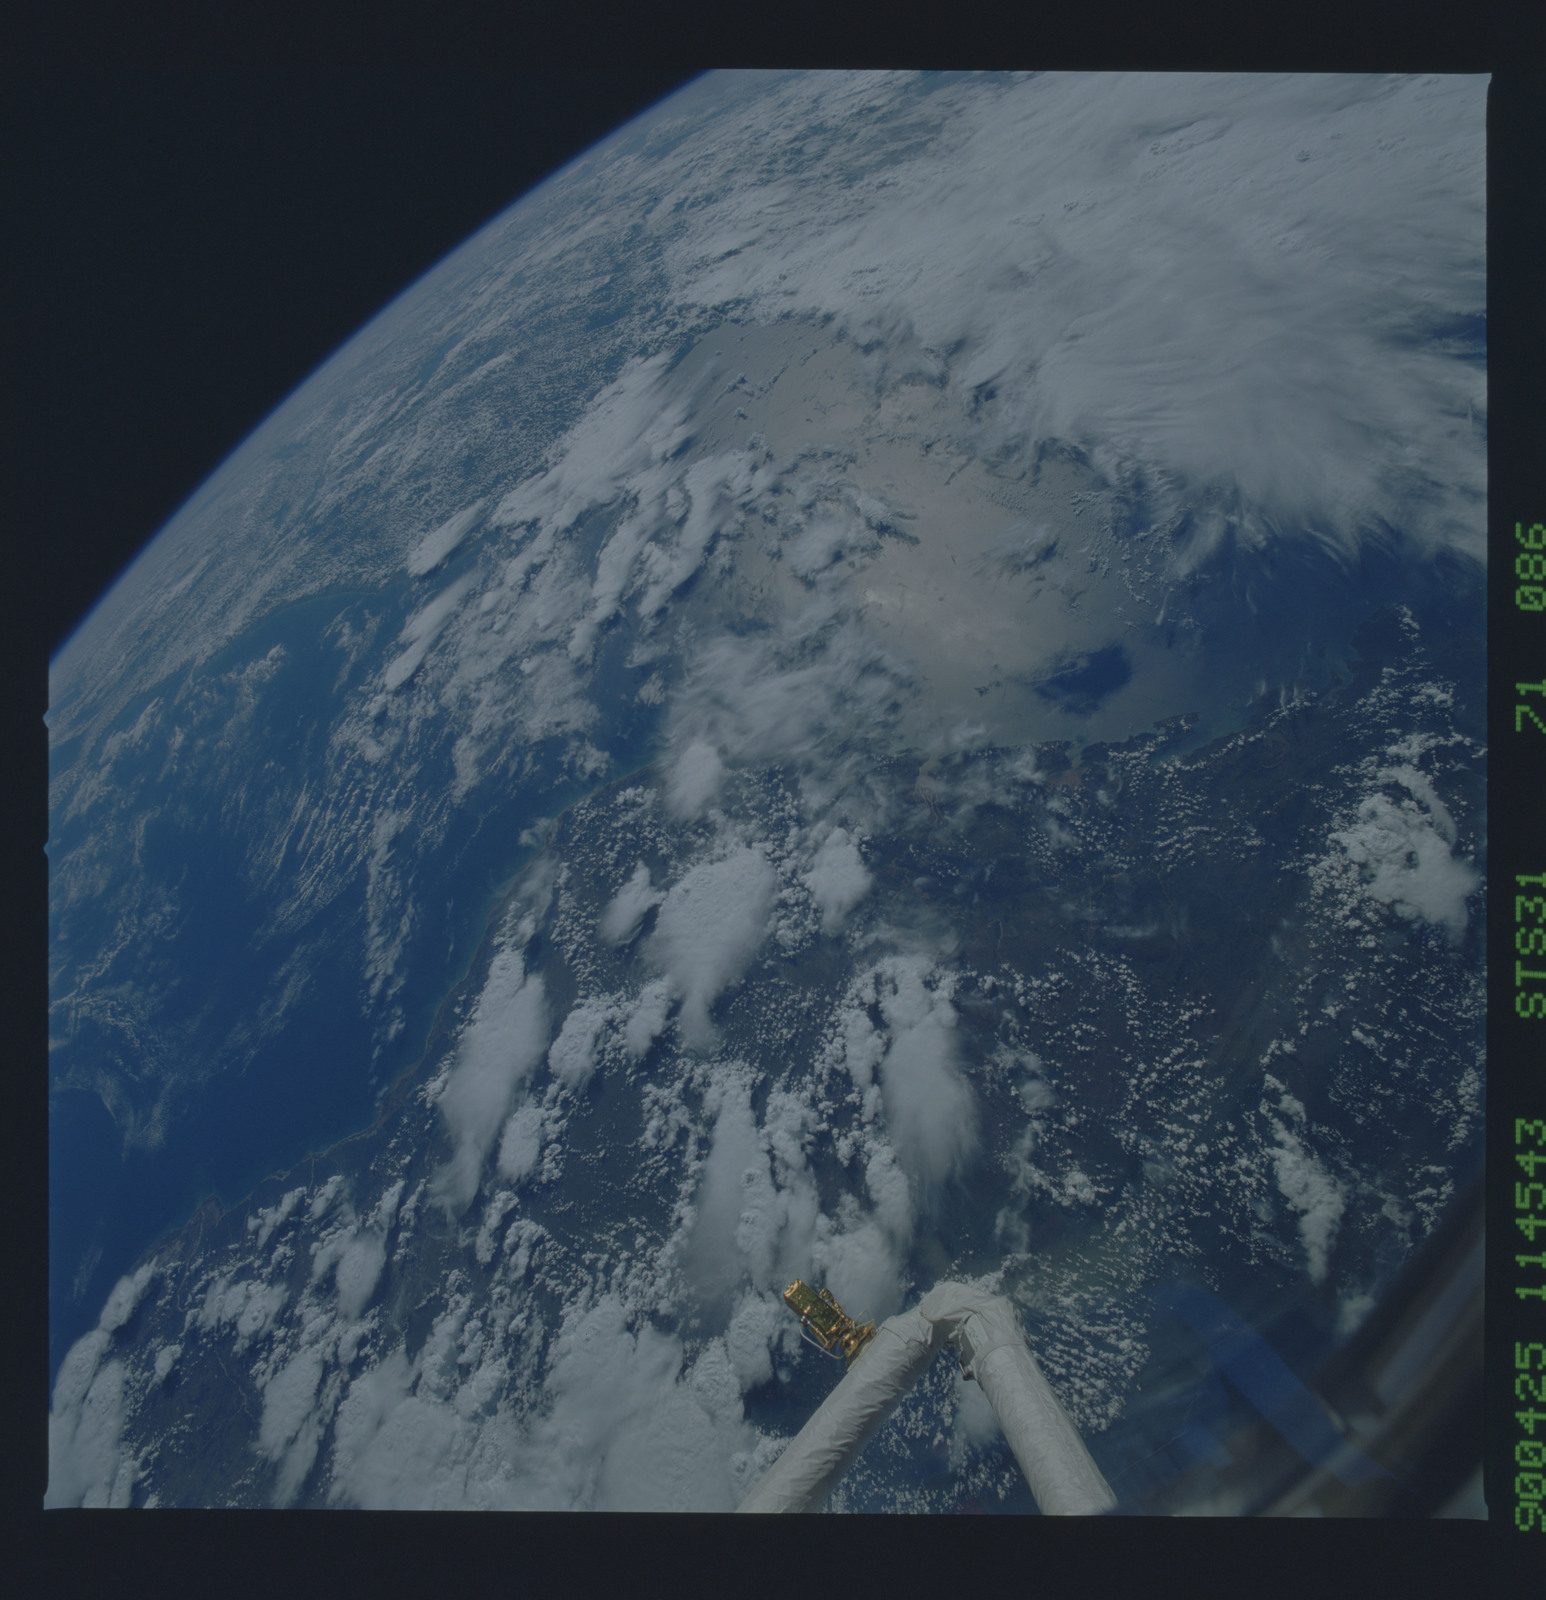 S31-71-086 - STS-031 - STS-31 earth observations